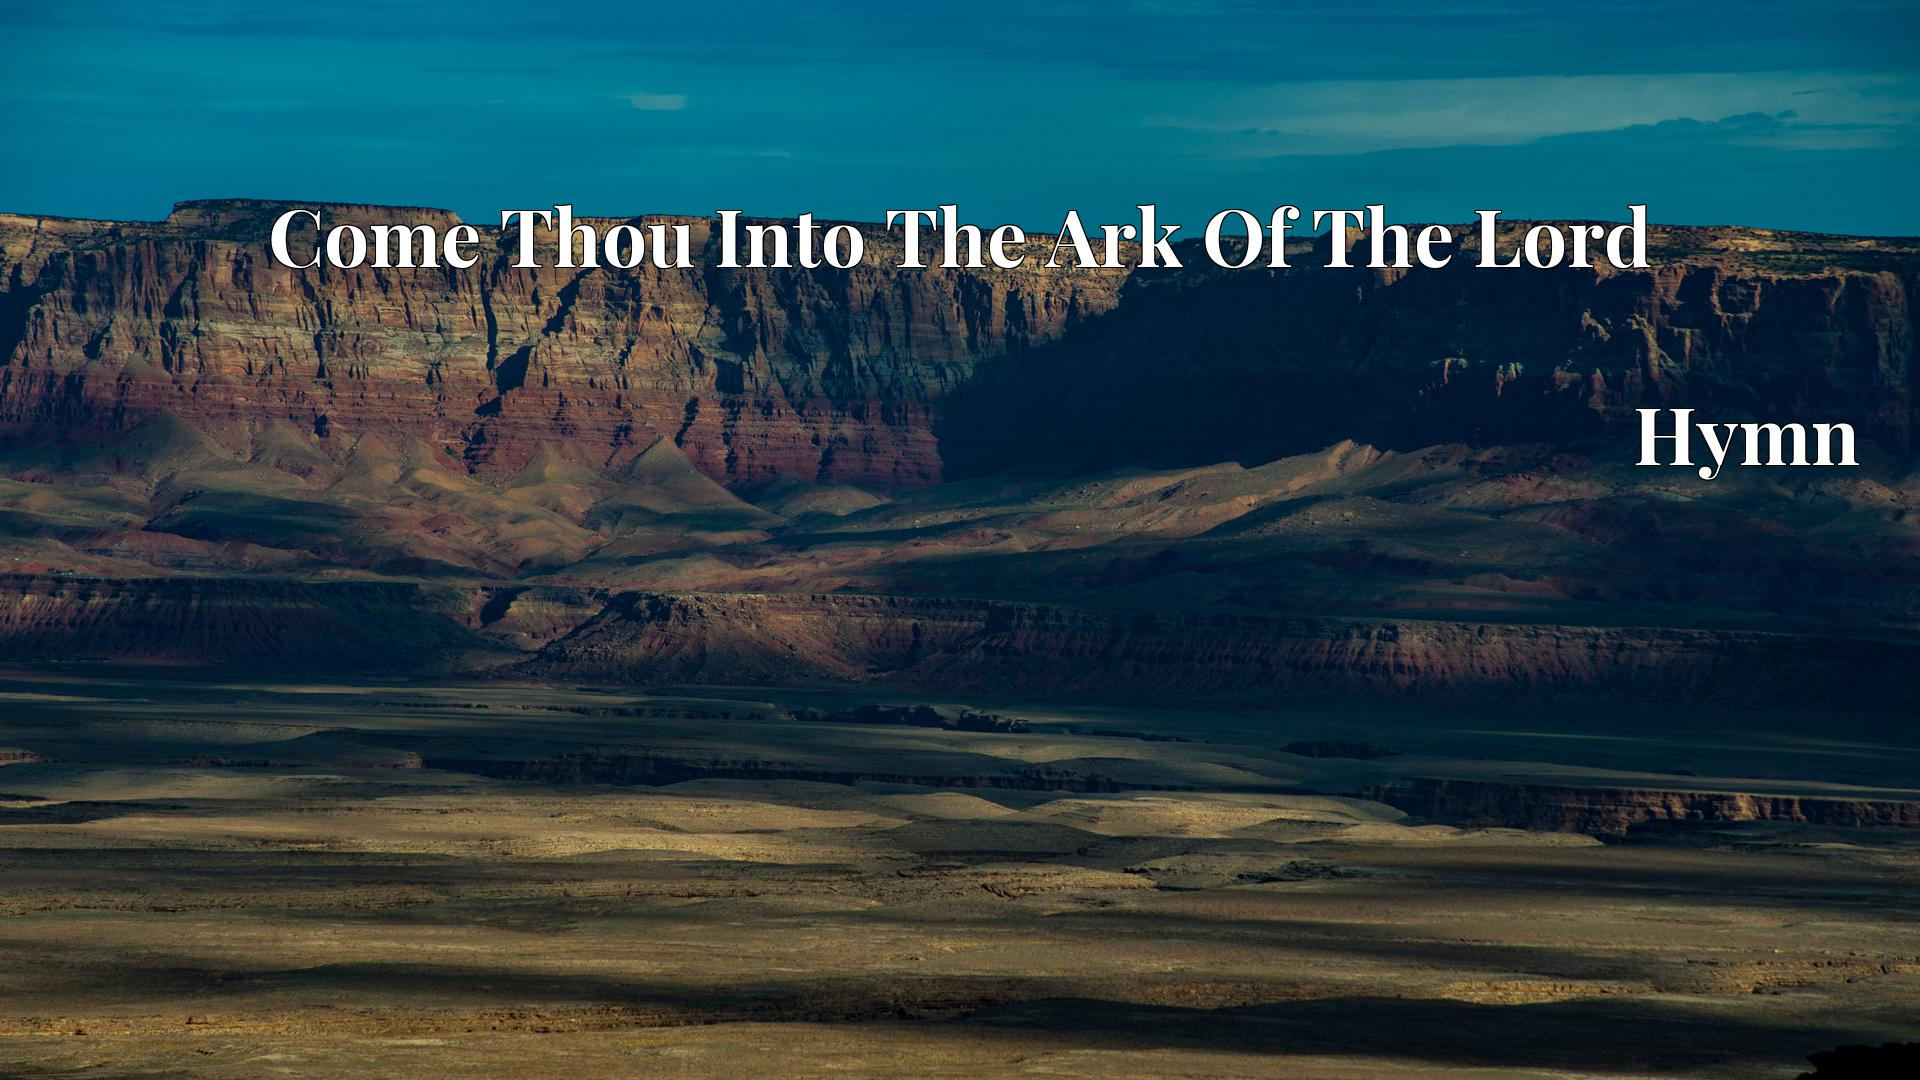 Come Thou Into The Ark Of The Lord - Hymn